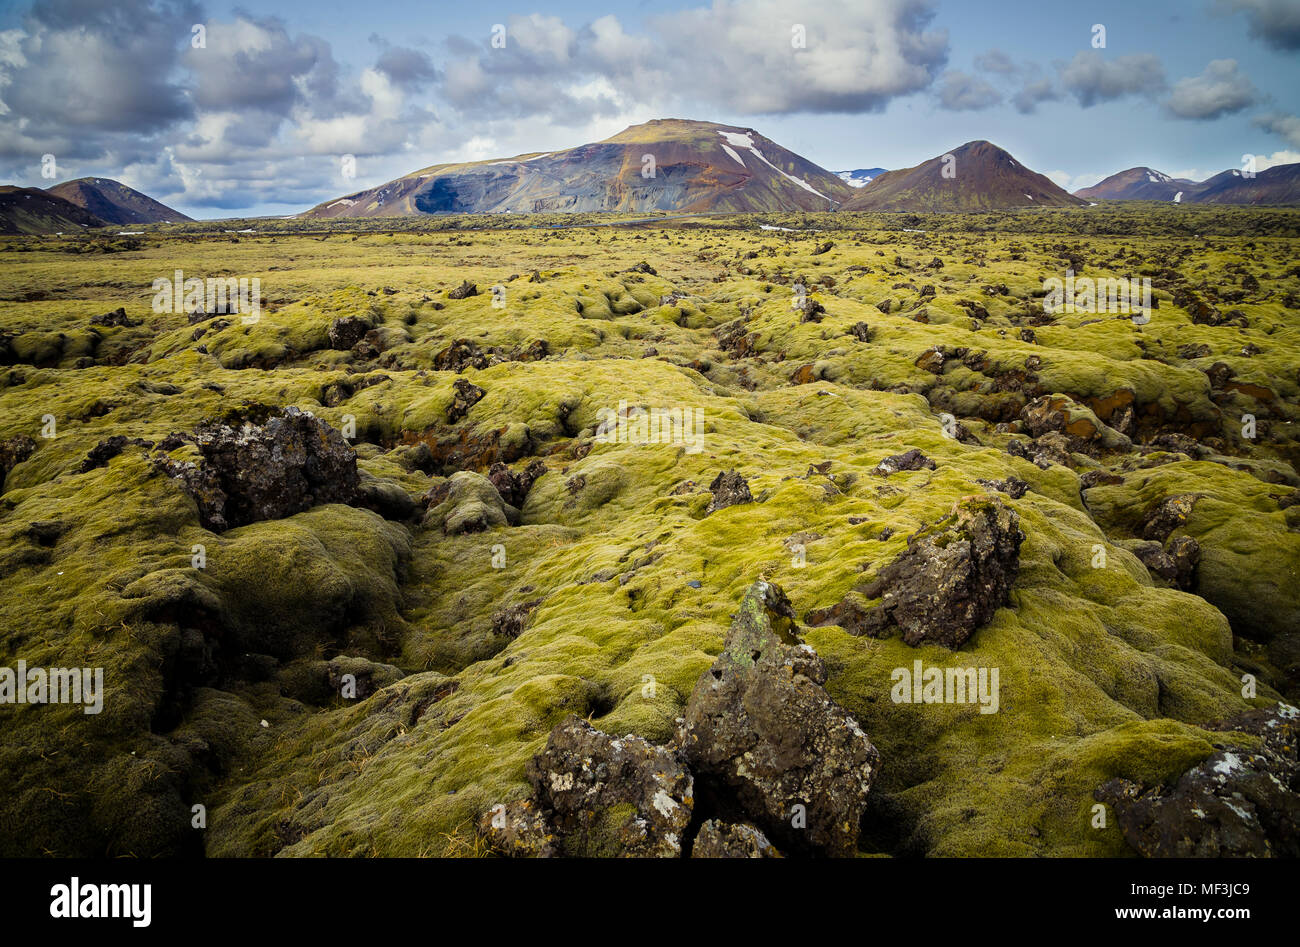 Iceland, South of Iceland, moss-grown volcanic rock - Stock Image